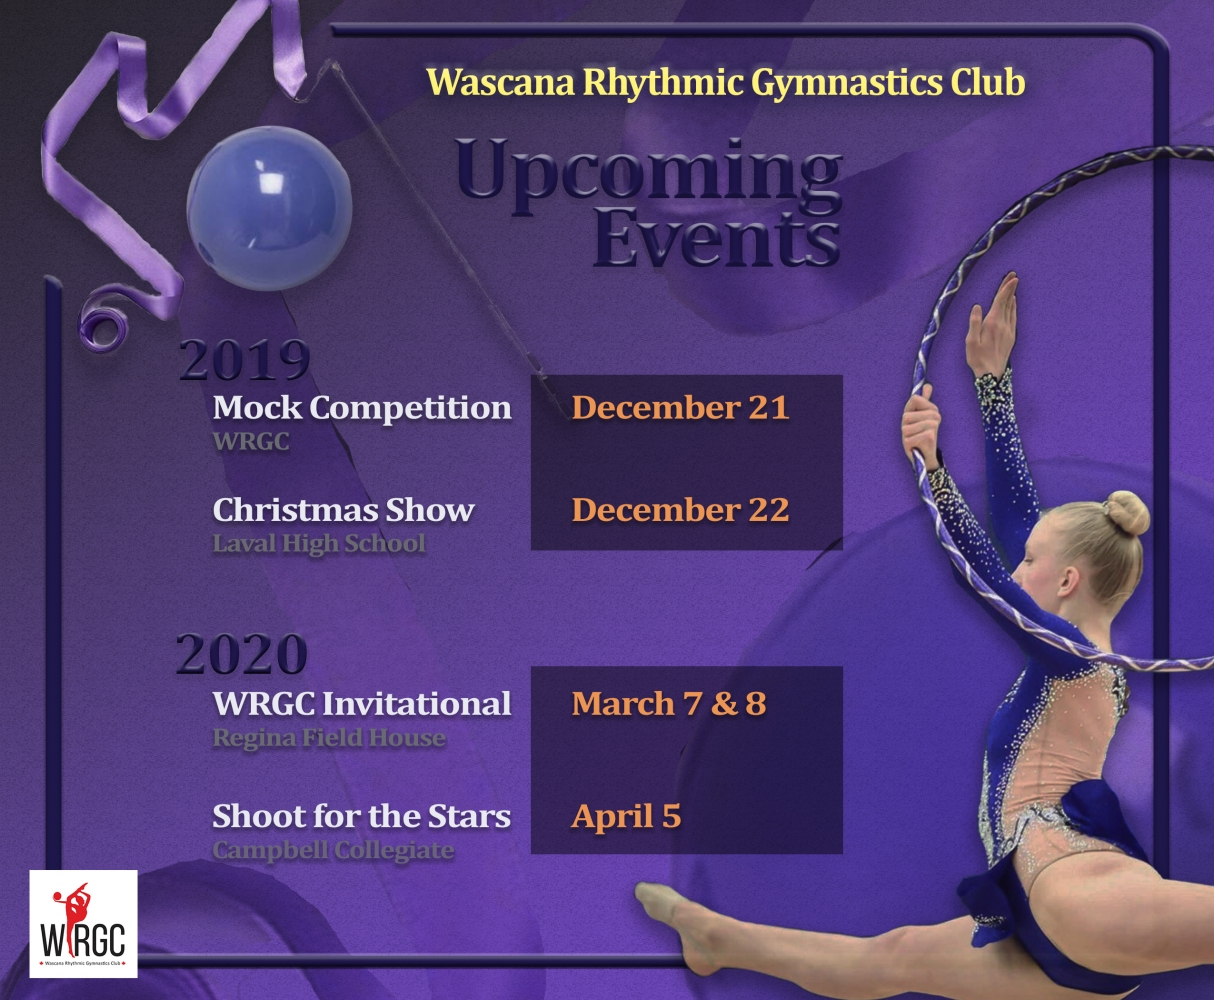 Upcoming WRGC Events for 2019-20